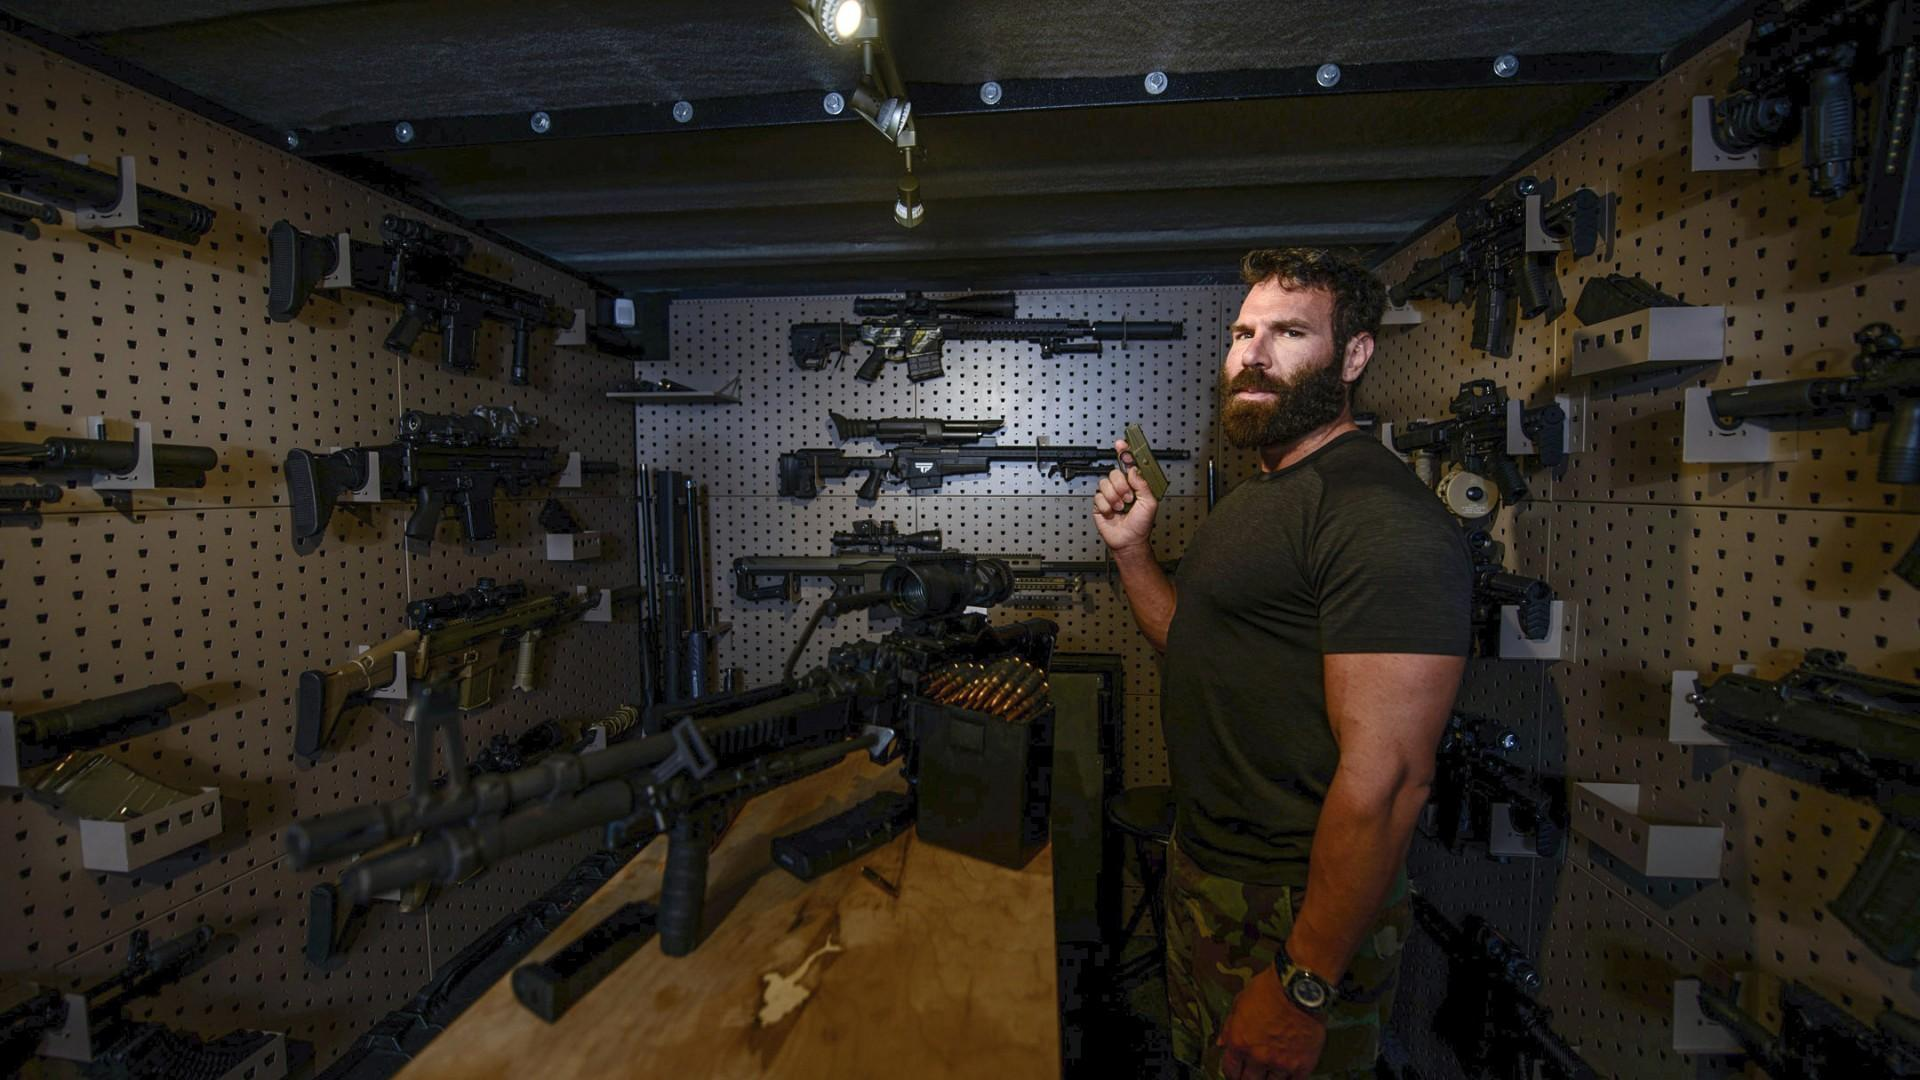 Dan Bilzerian photographed by Dustin Snipes for Square Mile magazine